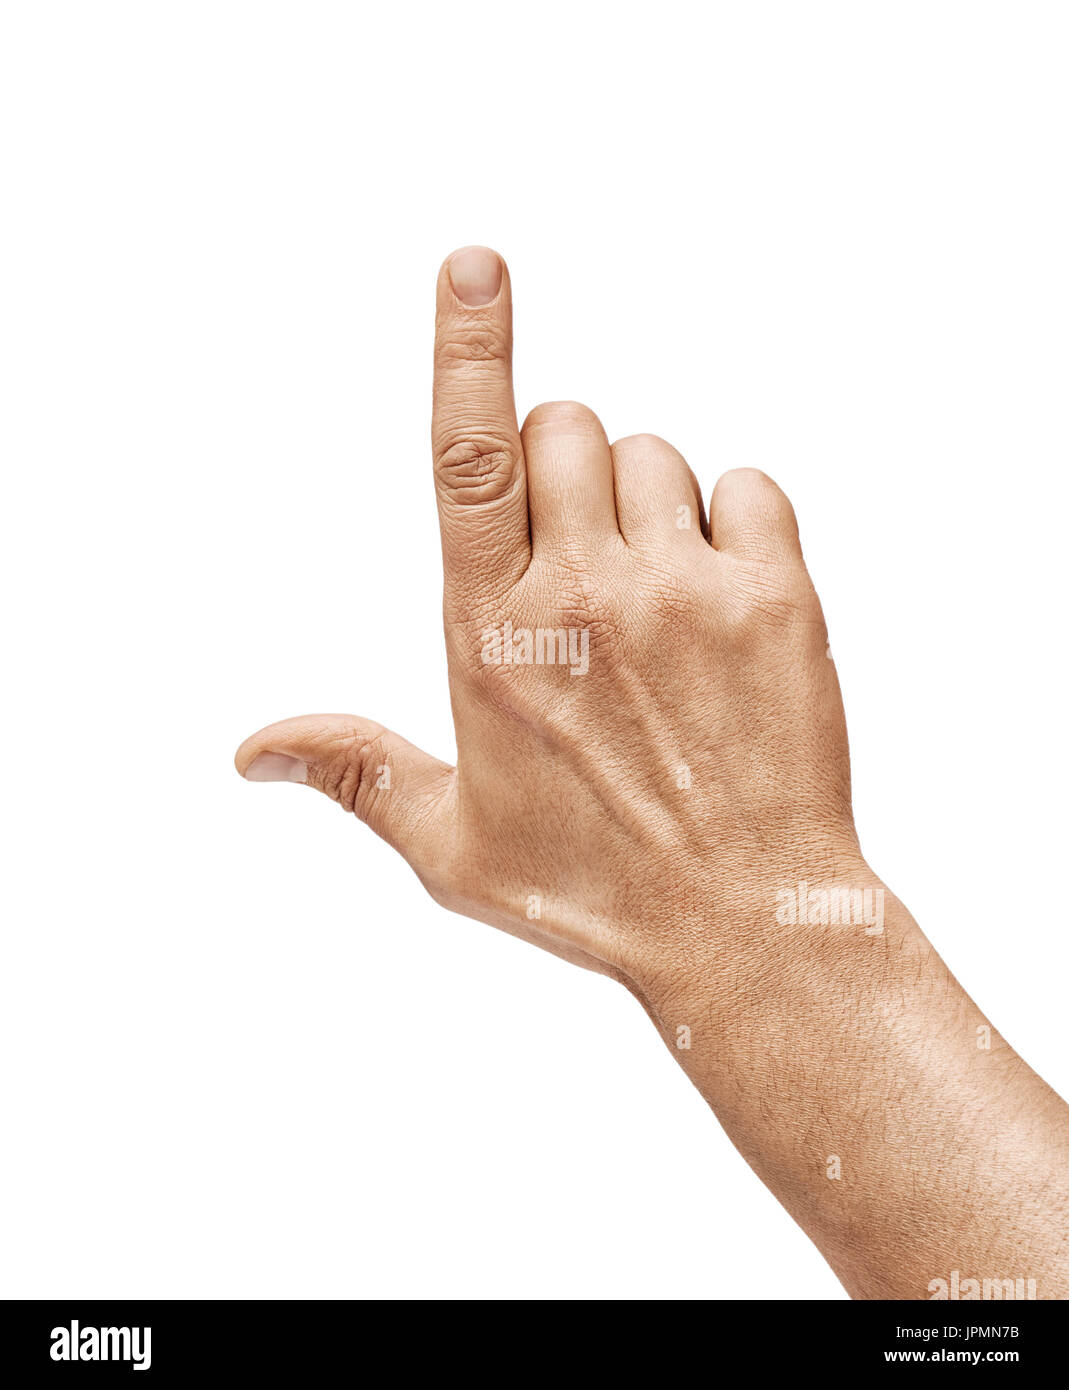 Man's hand touching or pointing to something isolated on white background. Close up. High resolution. - Stock Image